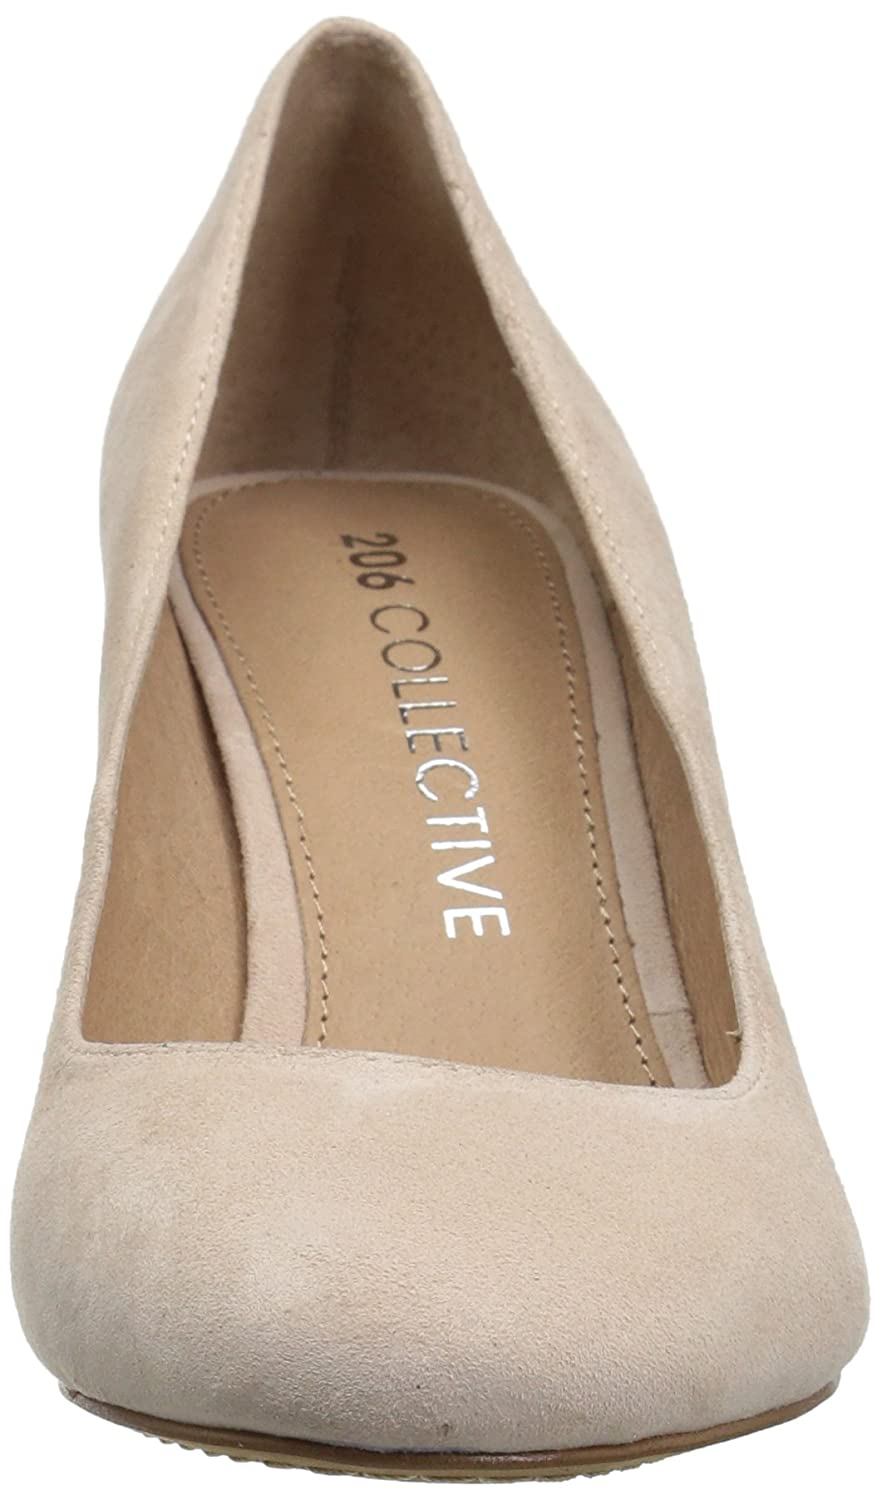 206 Collective Women's Coyle Round Toe Block Heel High US|Blush Pump B078B1H6DN 12 C/D US|Blush High Suede d2268e